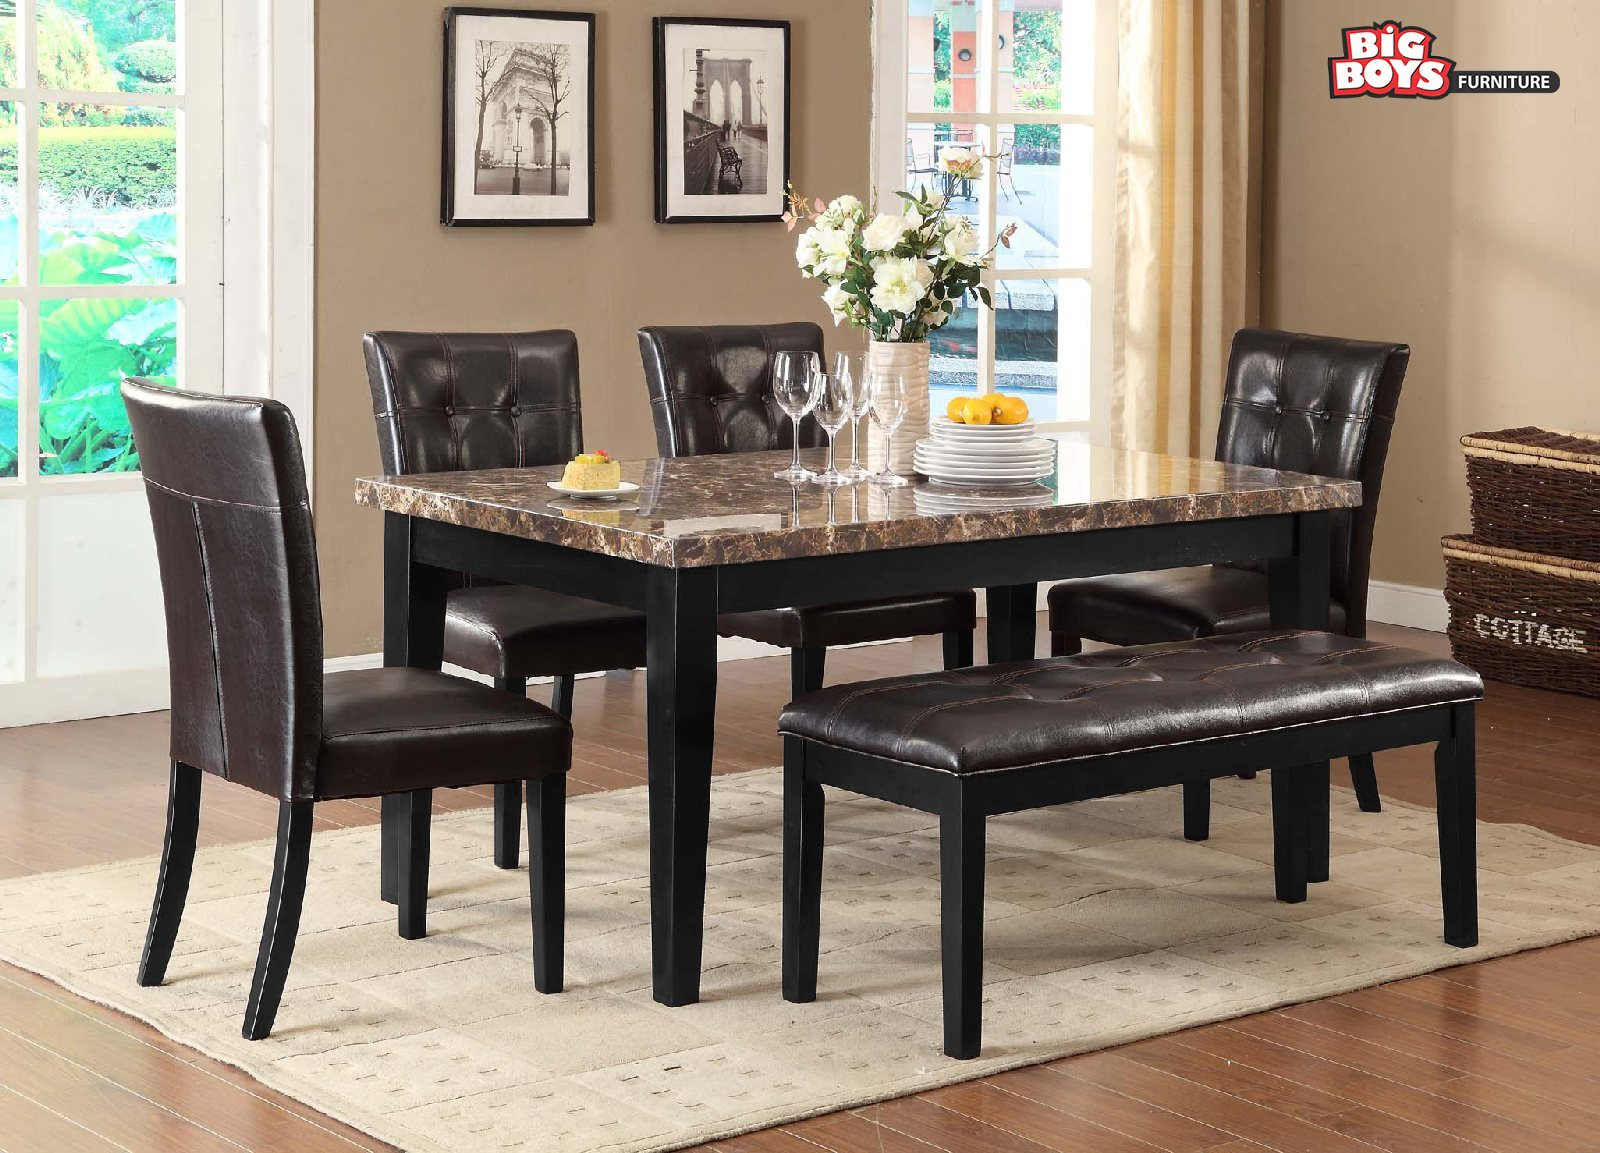 Unique combination of furniture at best prices